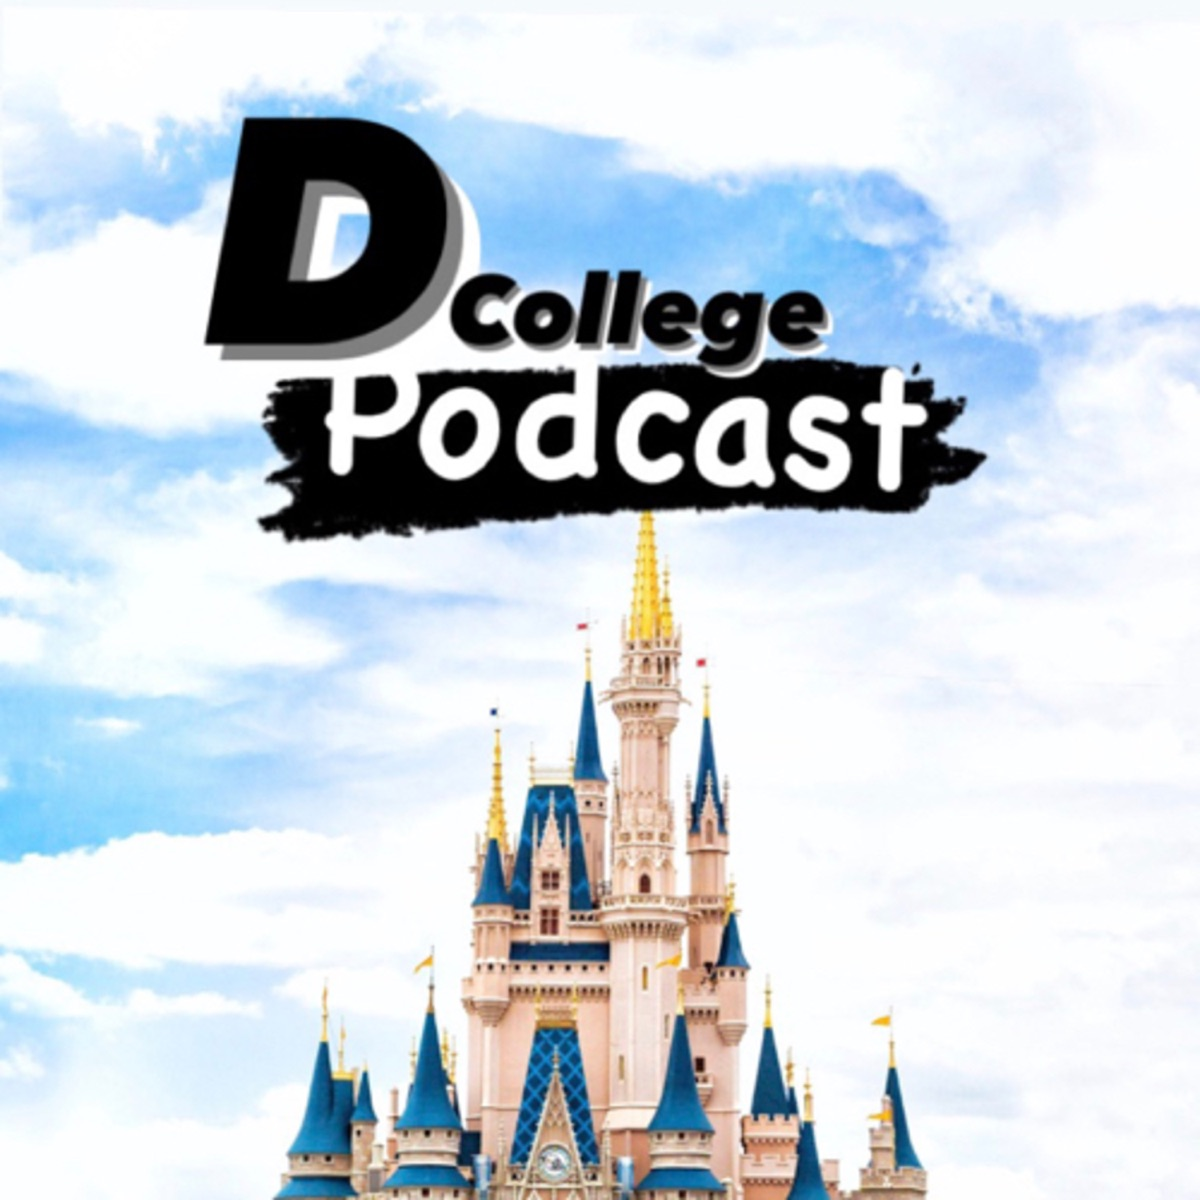 D. College Podcast